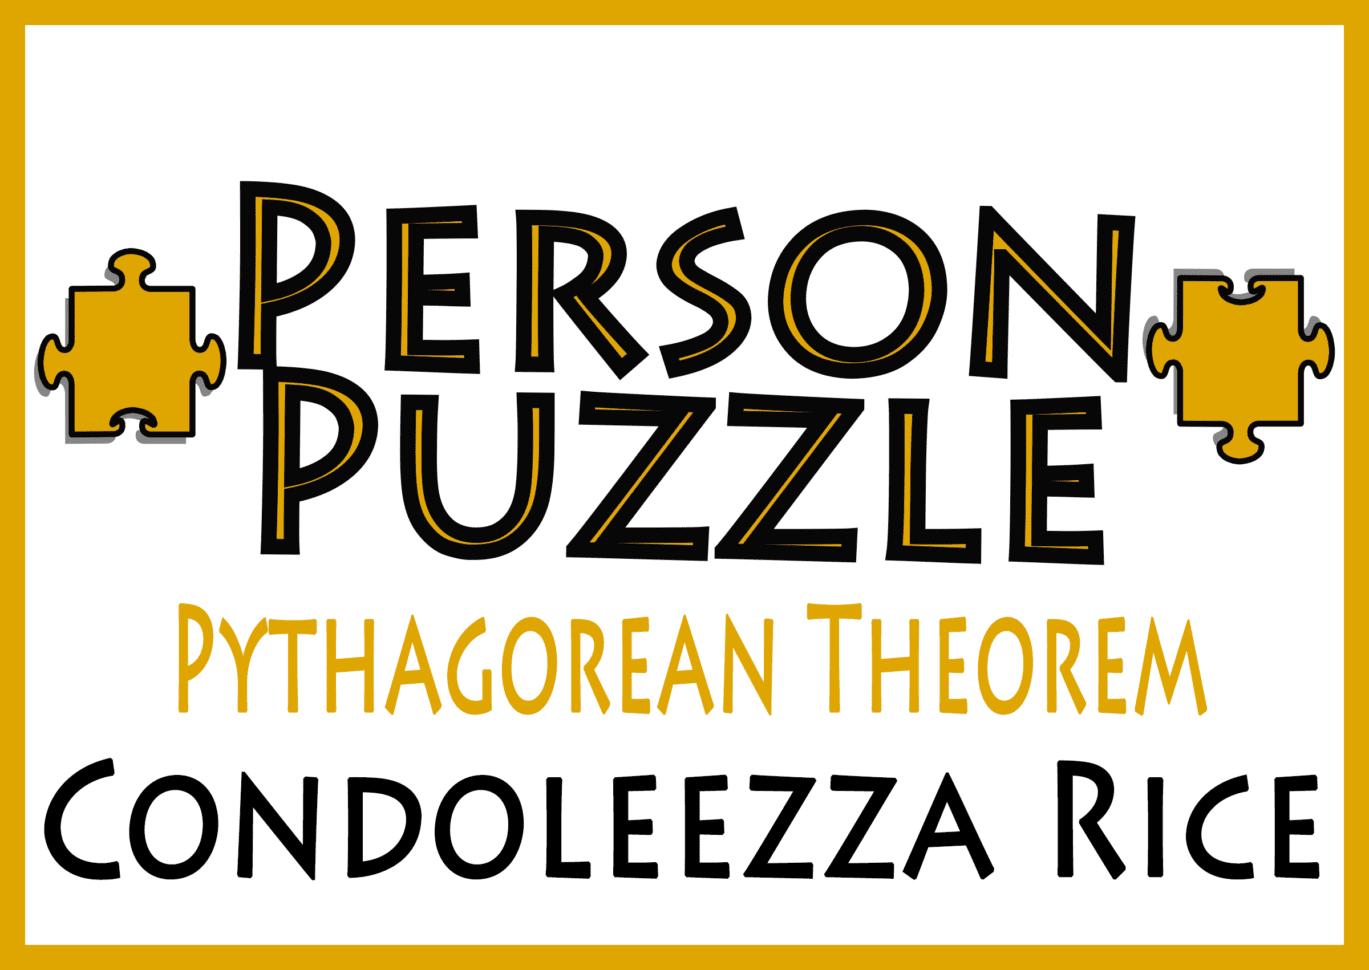 Person Puzzle Pythagorean Theorem Condoleezza Rice